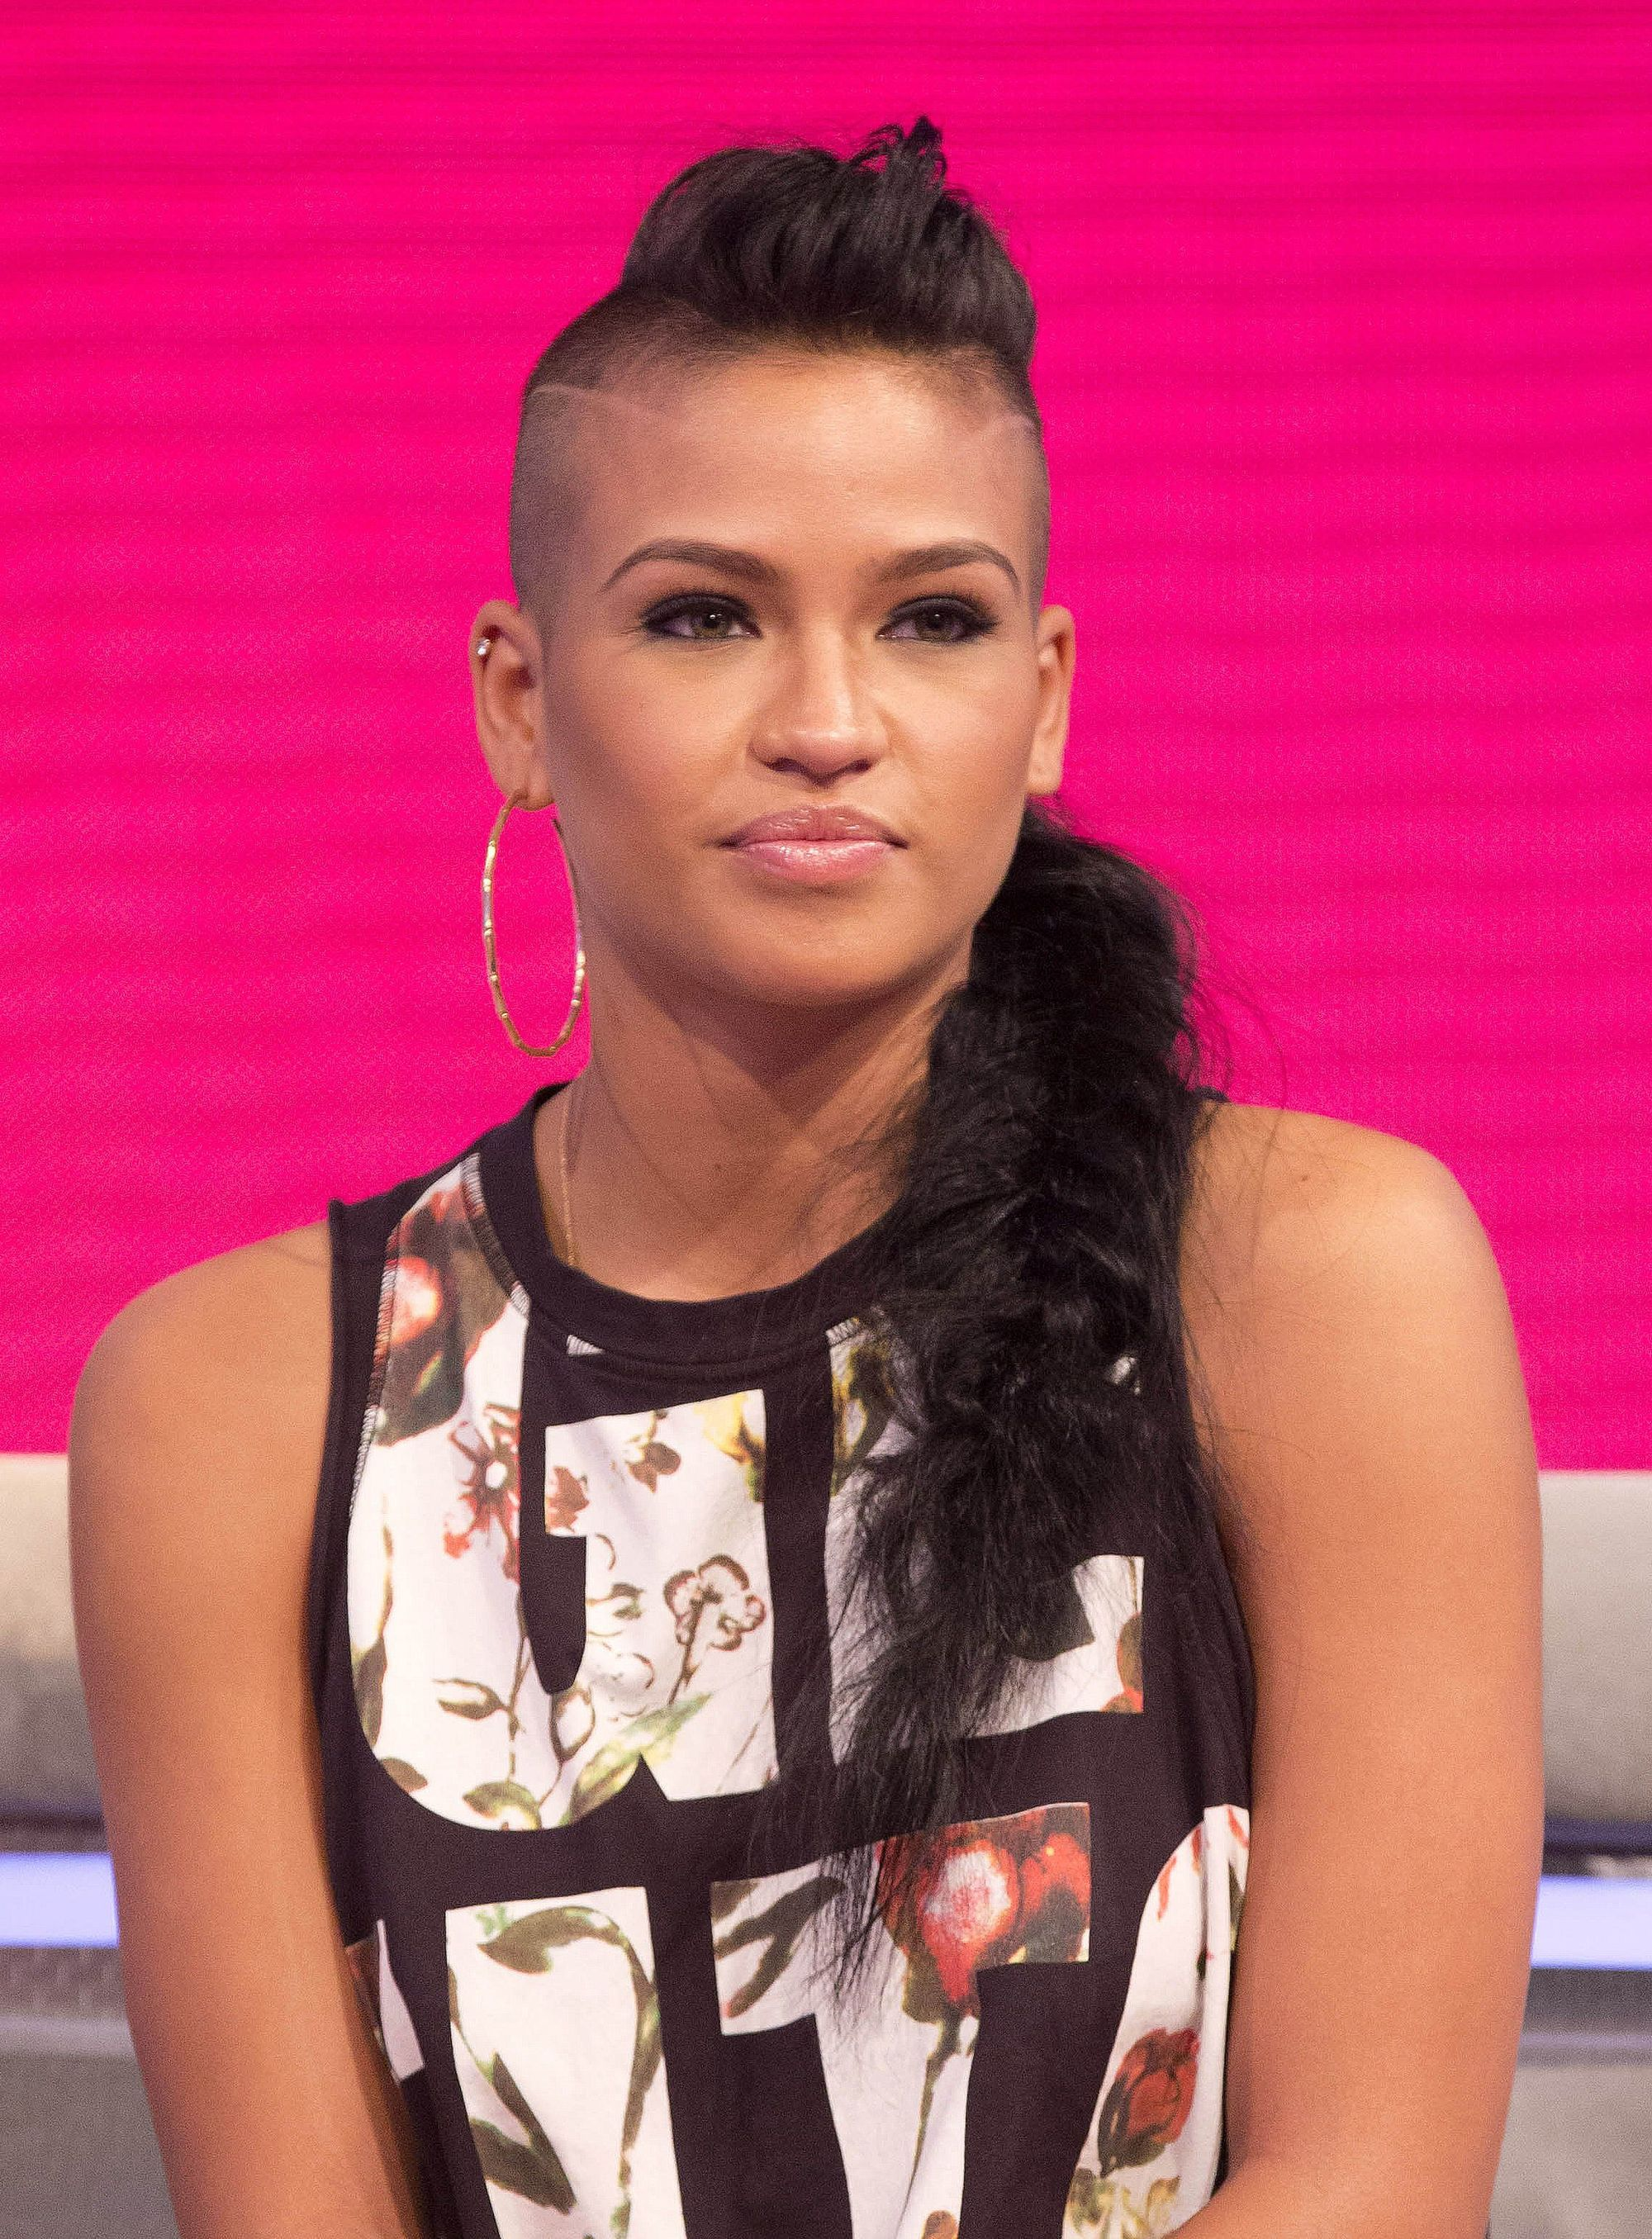 cassie with a shaved mohawk hairstyle braided into a long braid